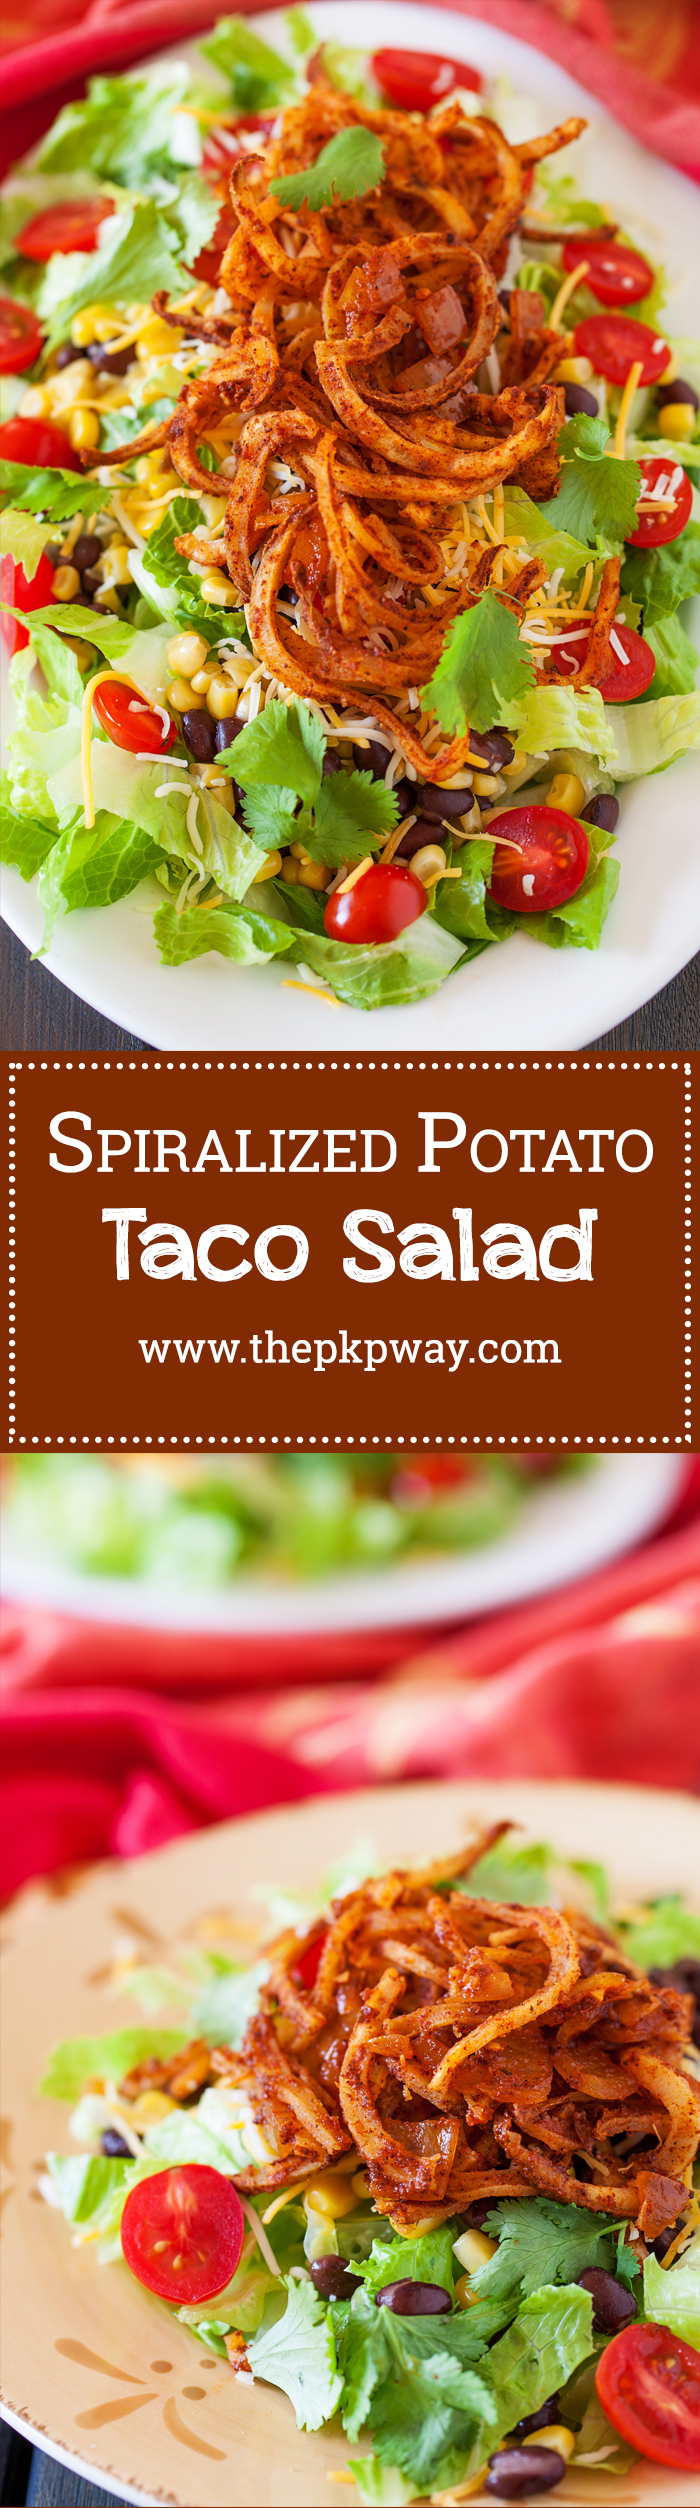 Crispy spiralized potato tossed in a taco seasoned sauce makes for a no-dressing-needed salad.